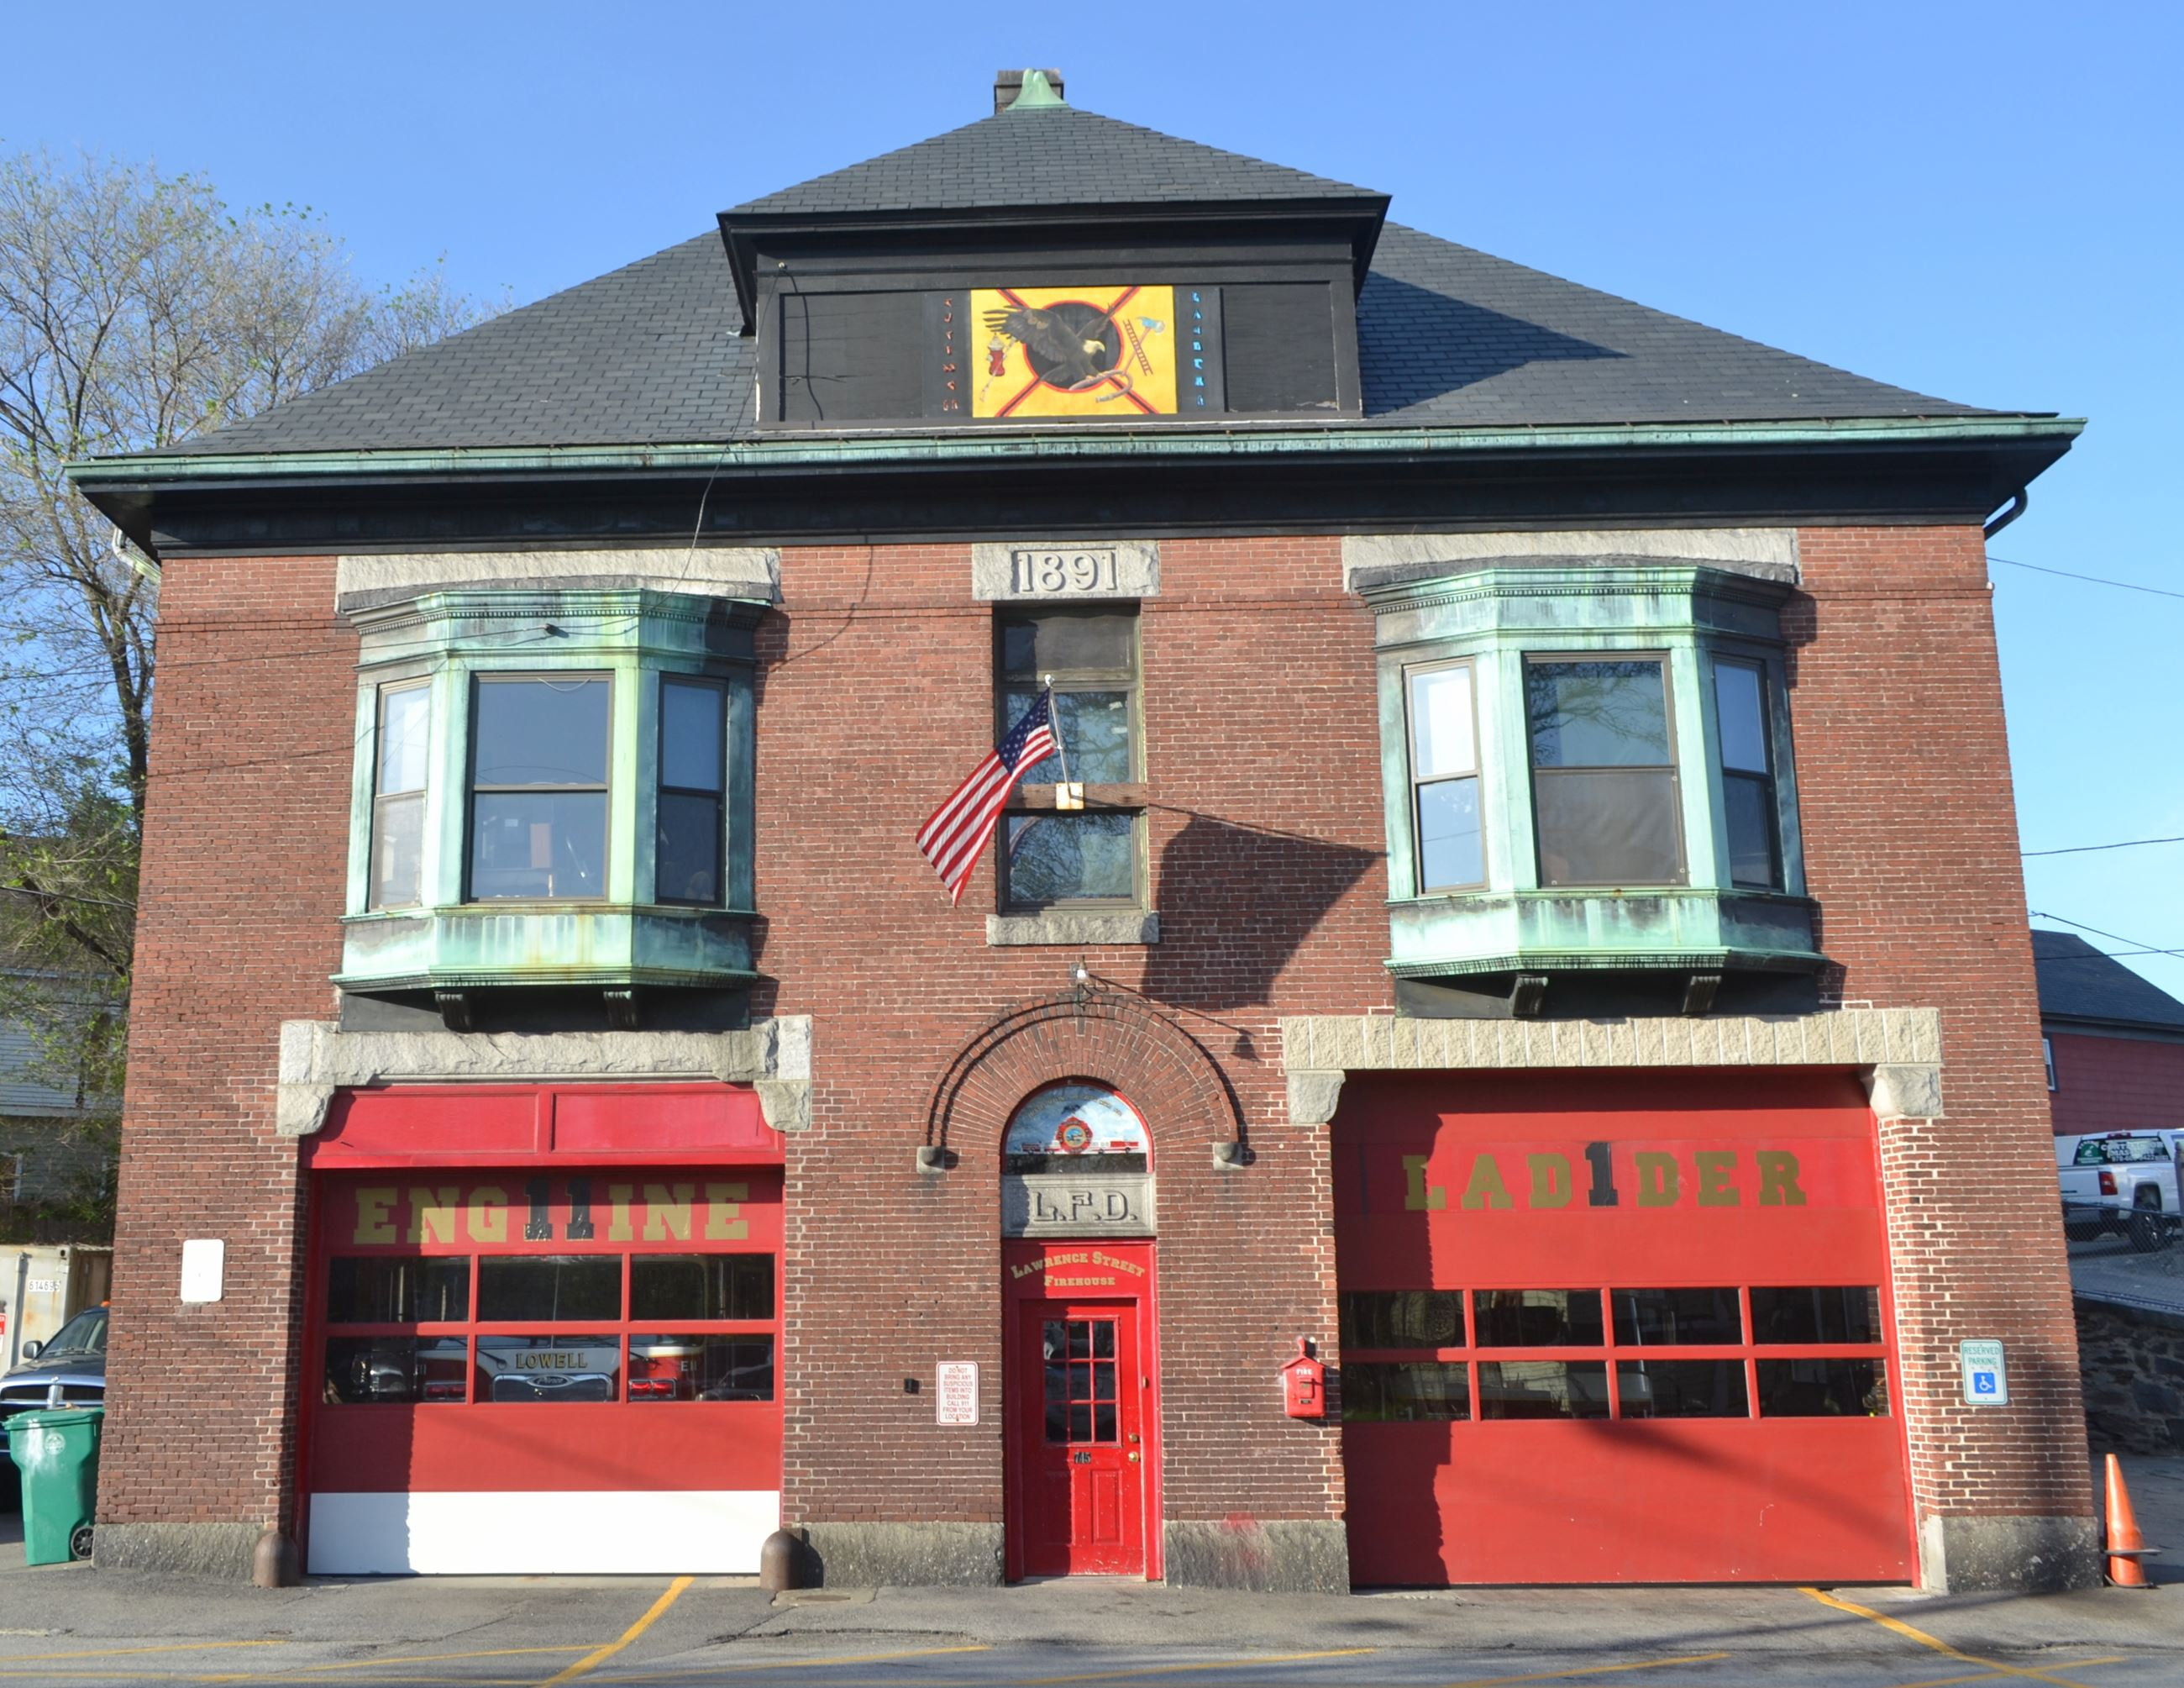 Lawrence St. Firehouse